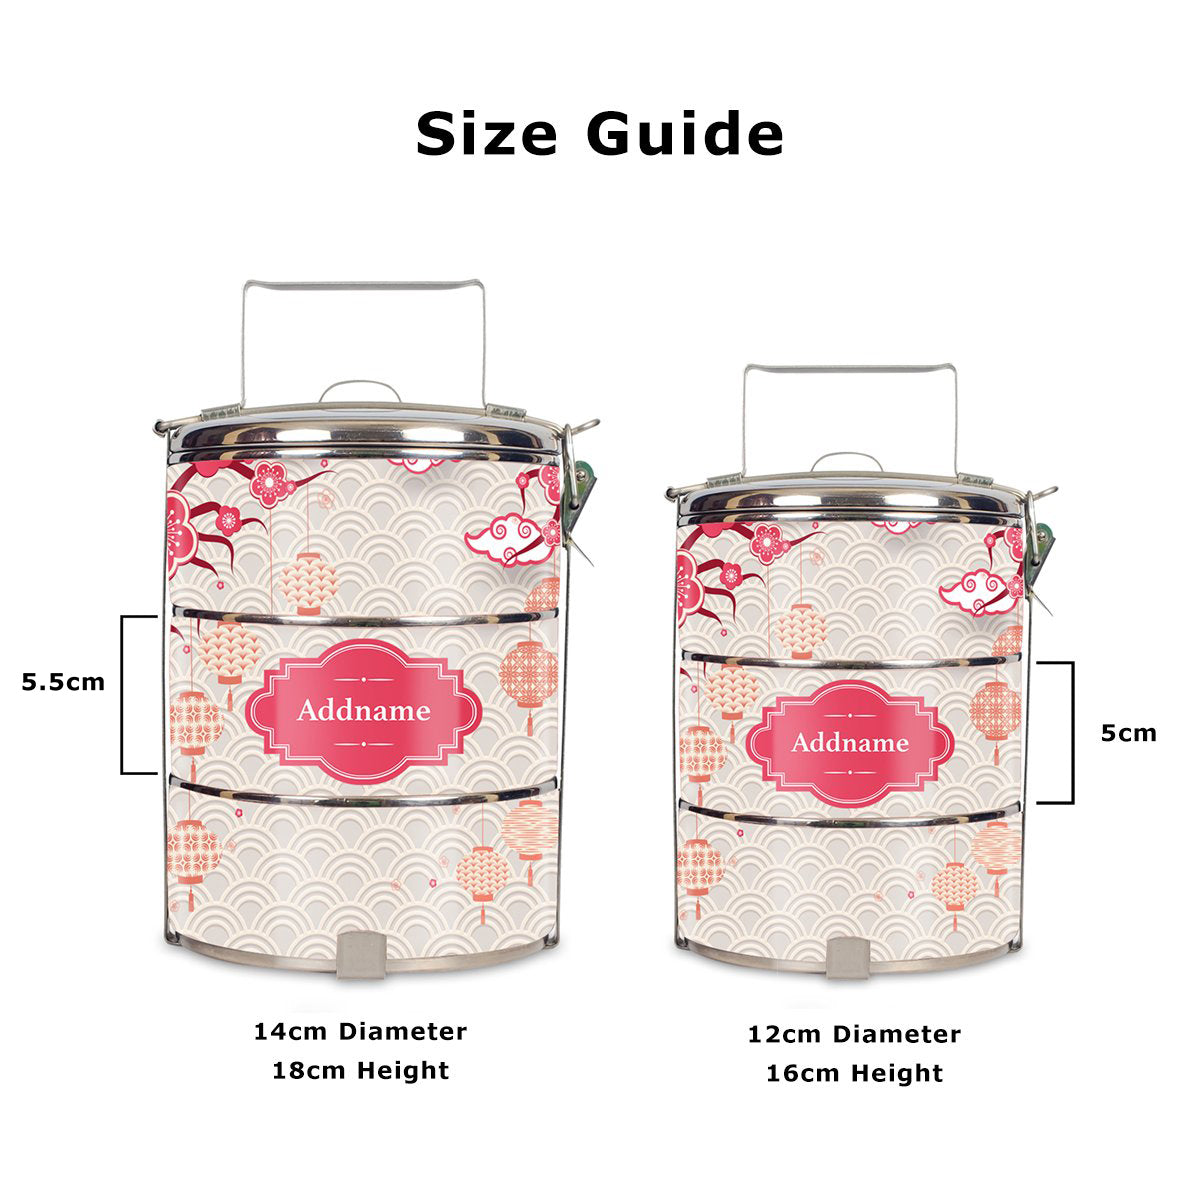 Teezbee.com - Sakura Tiffin Carrier (Size Guide)